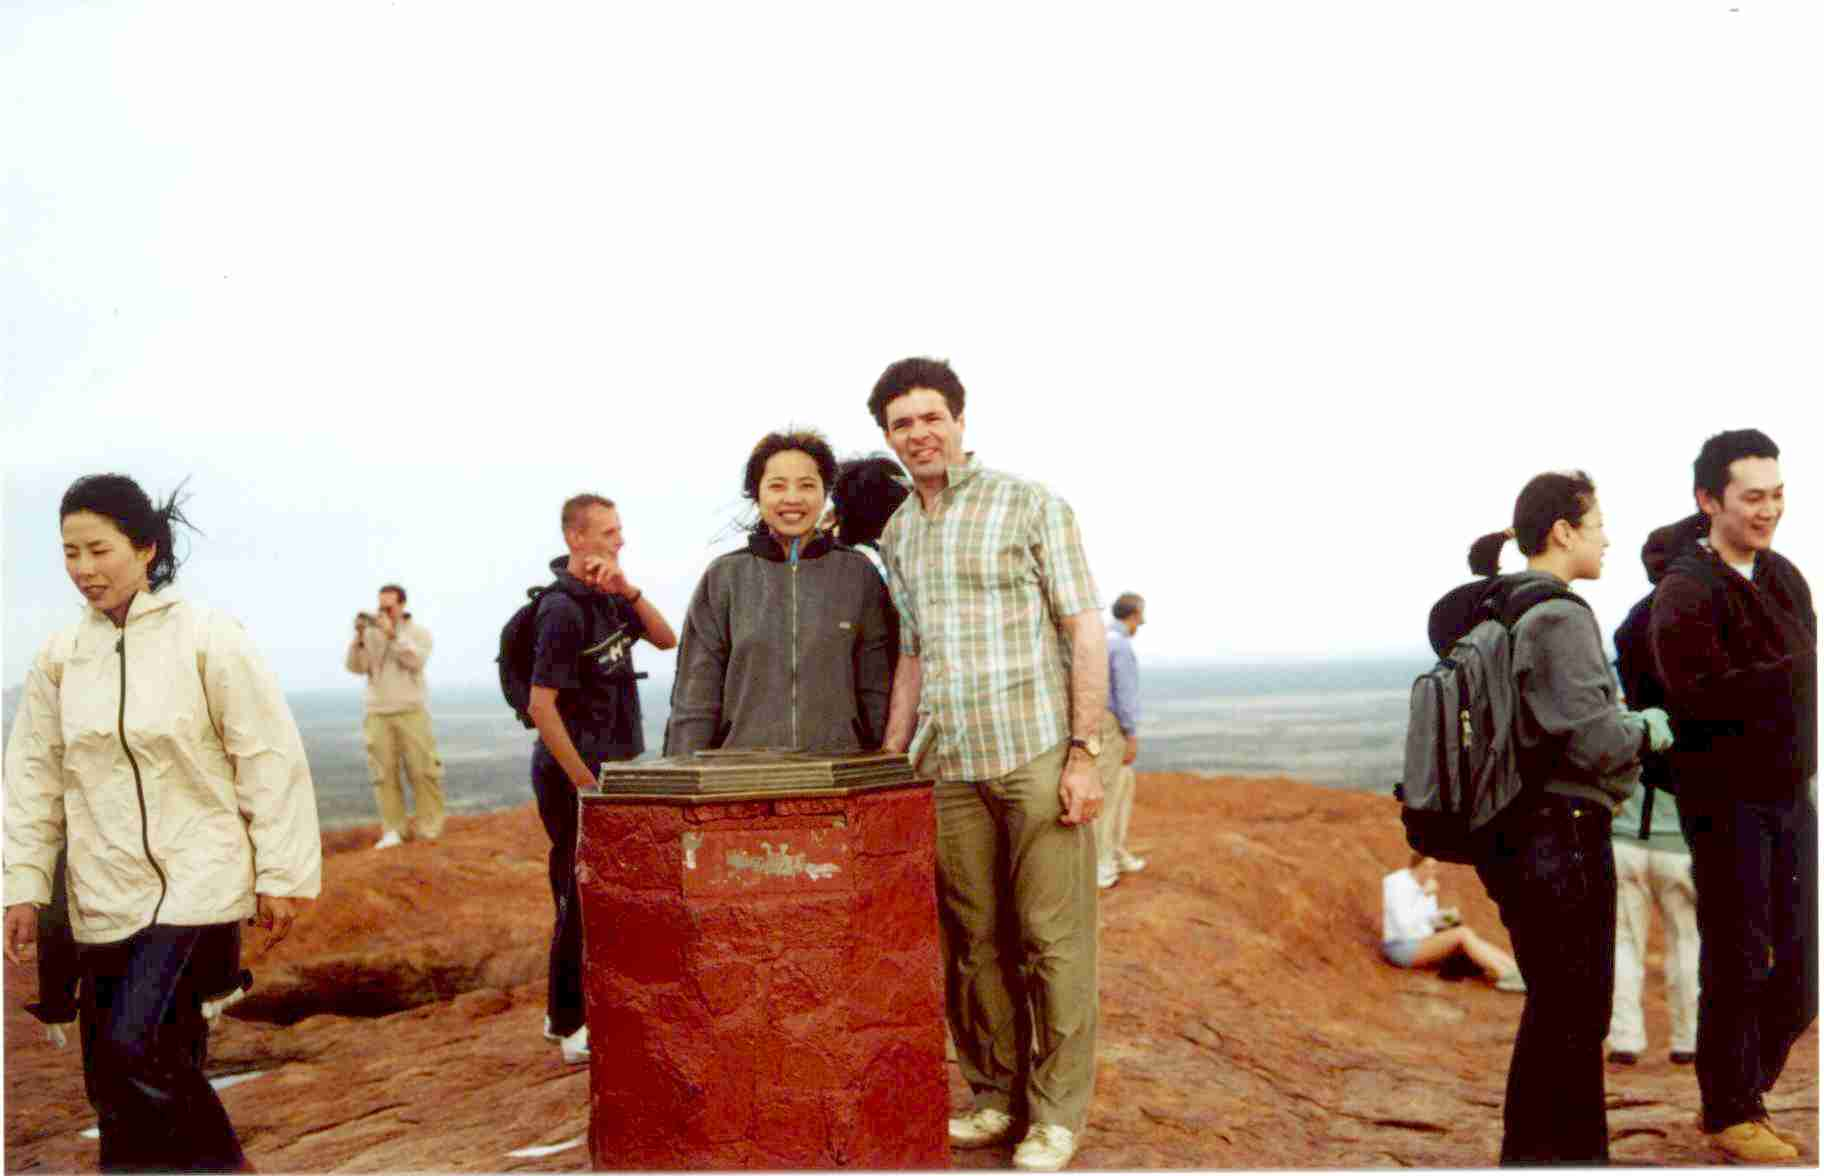 View at top of Ayers rock